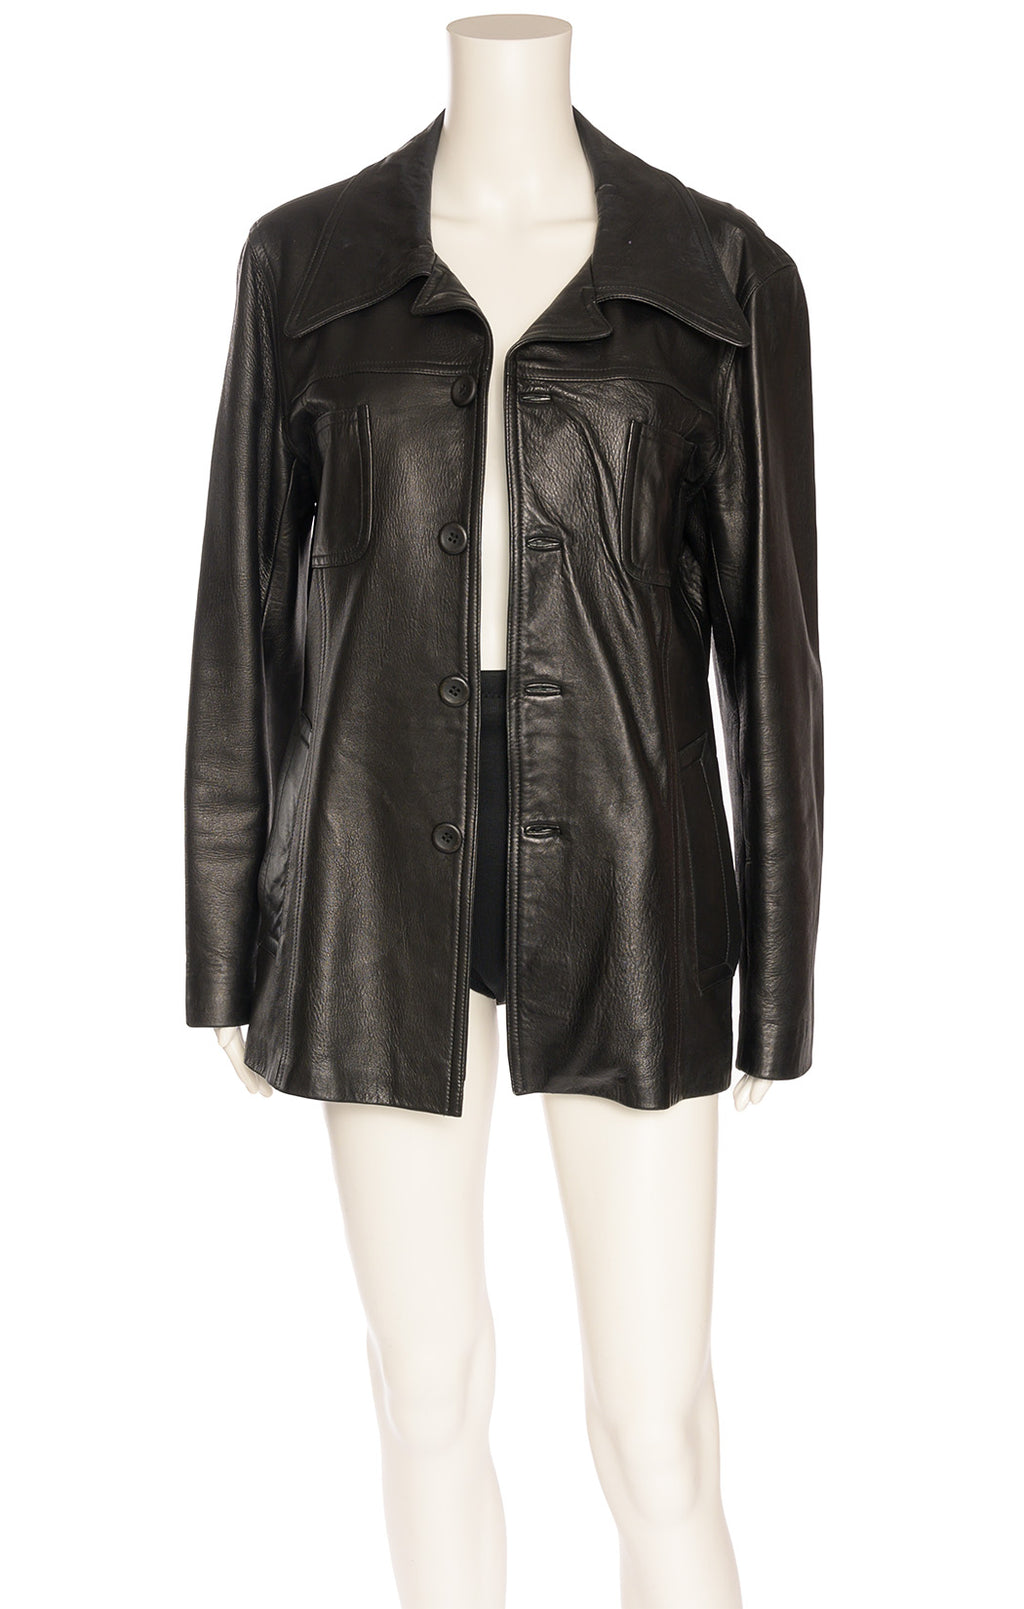 Black button down leather jacket with four pockets in front